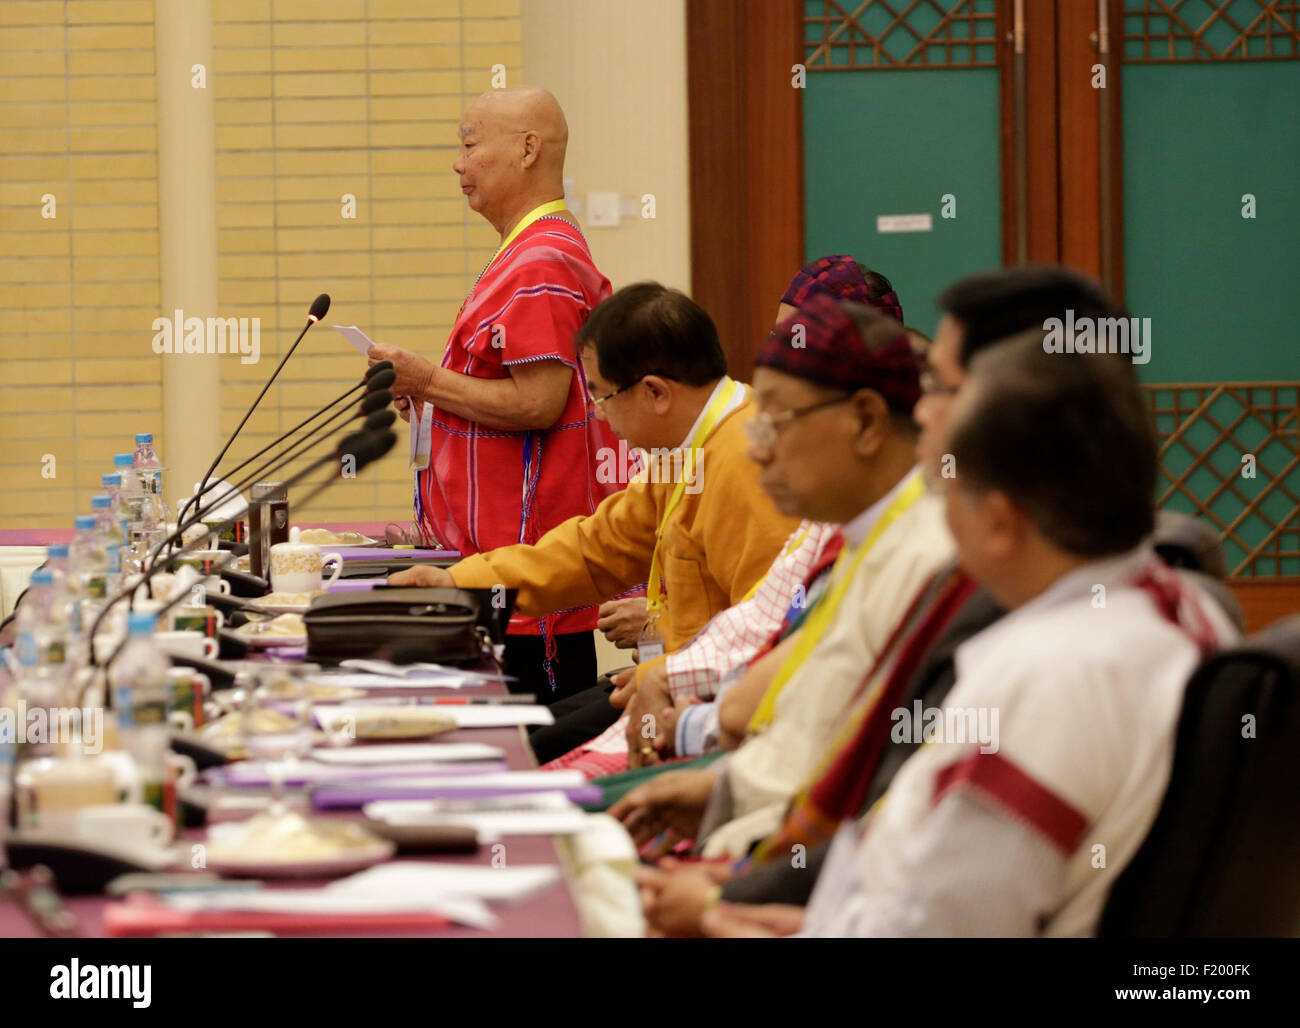 Nay Pyi Taw, Myanmar. 9th Sep, 2015. KNU Chairman Saw Mutu Sae Po (1st L) speaks during a meeting of Myanmar President - Stock Image